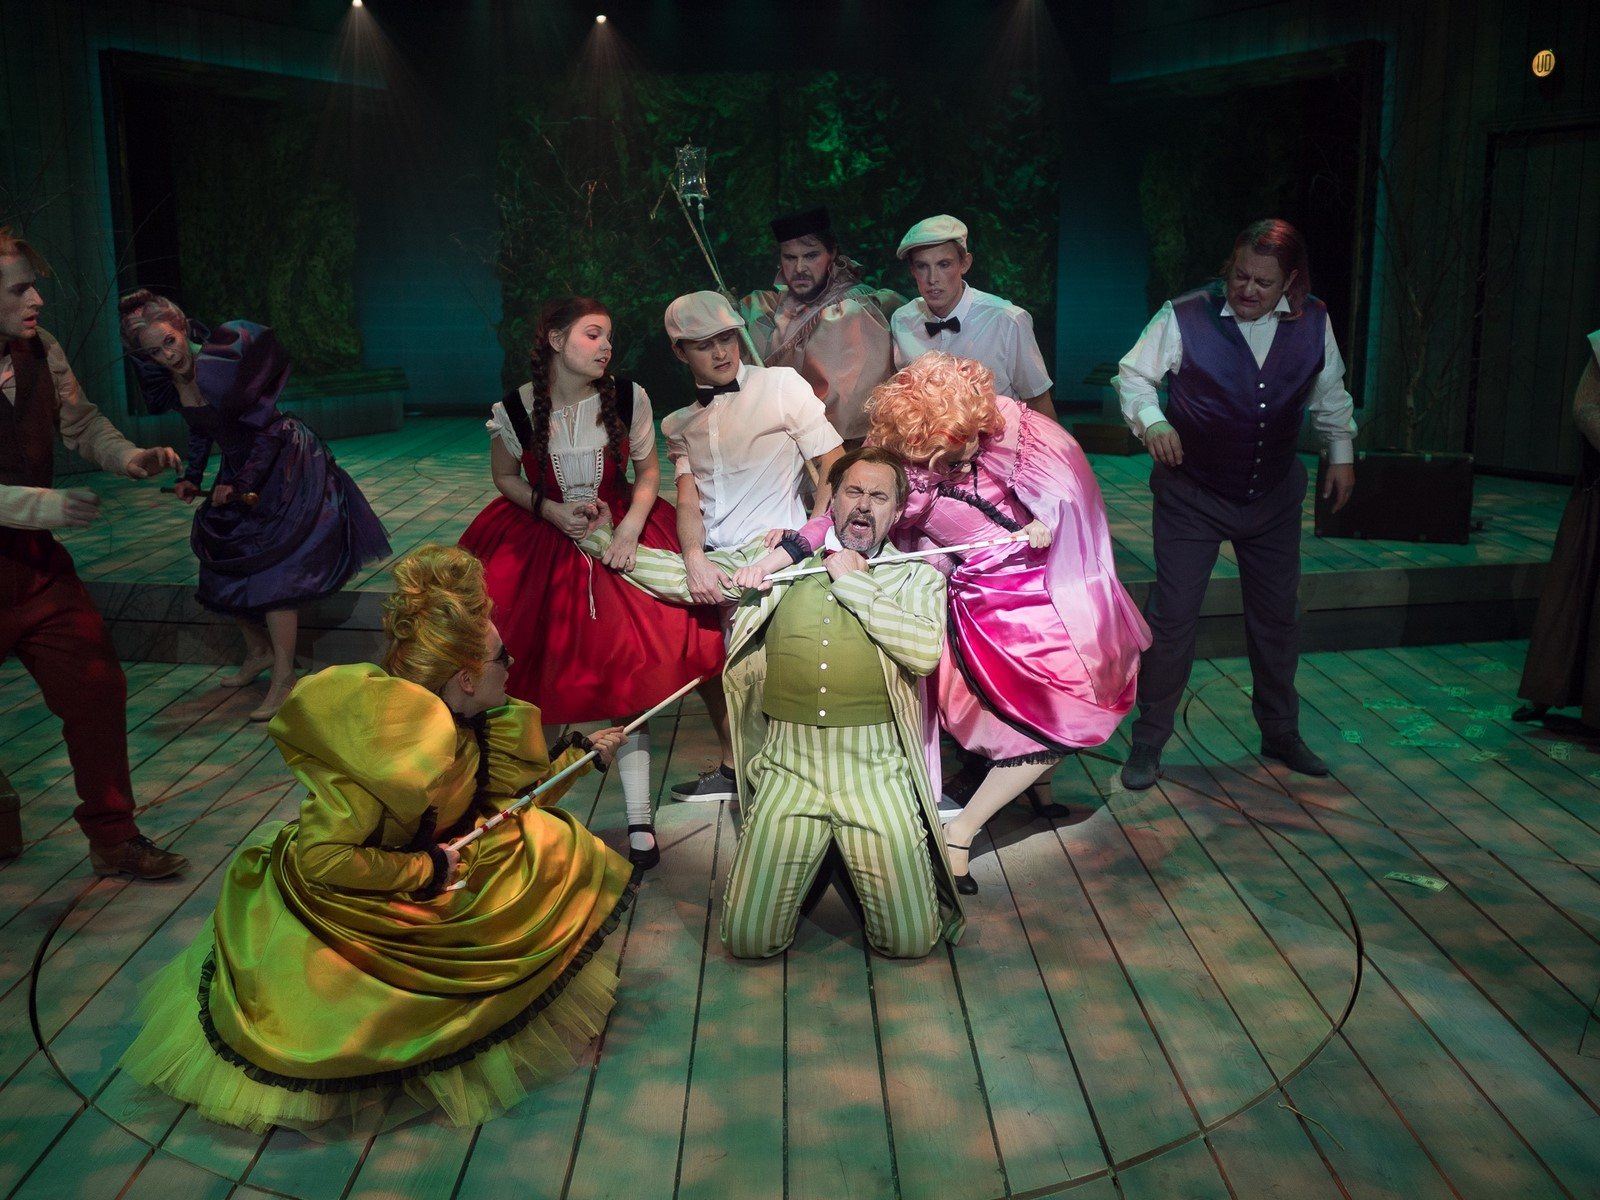 Anmeldelse: Into the Woods, Tivoli (Heltemus Production ApS)